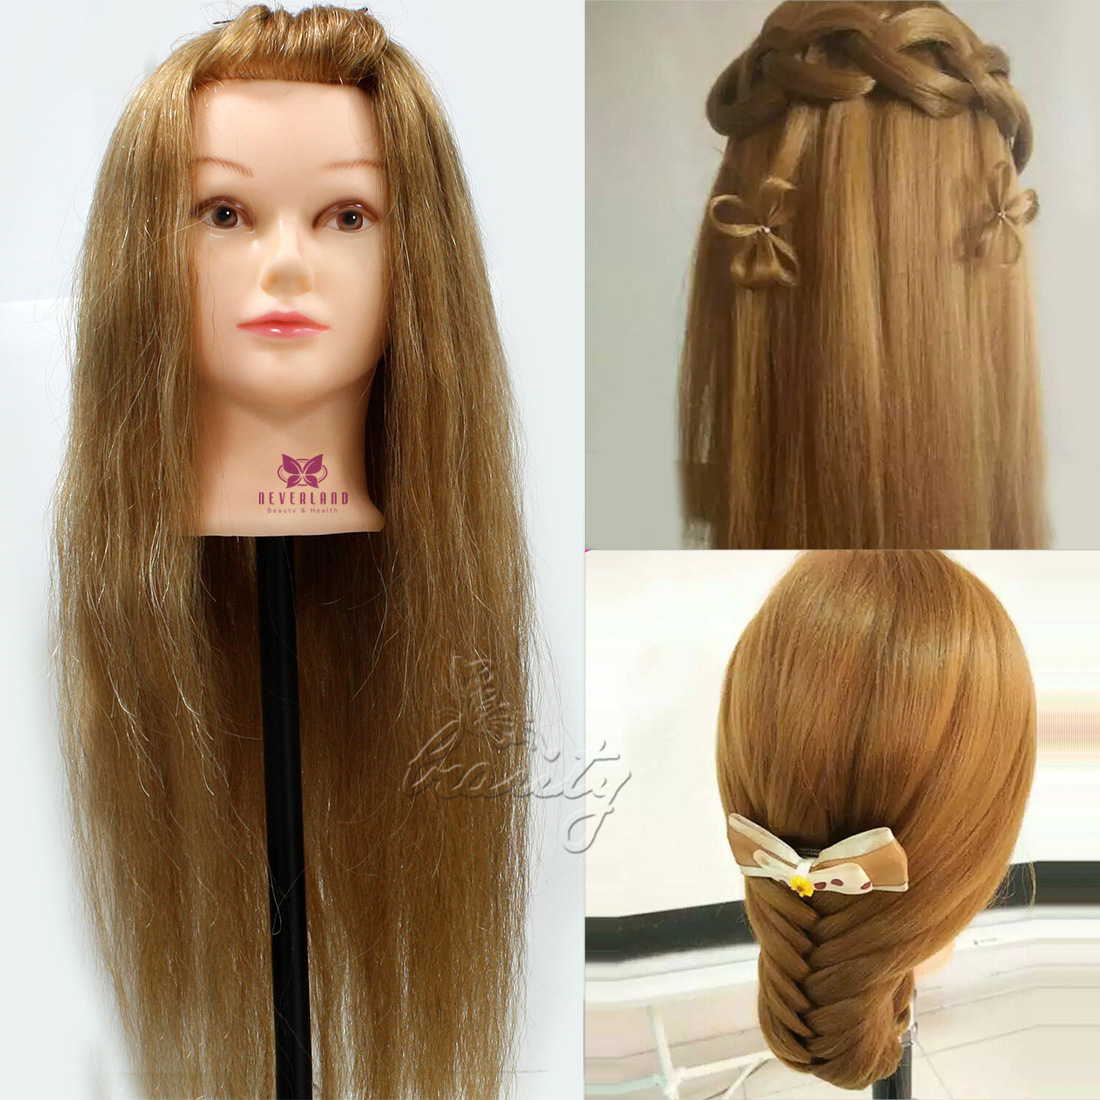 Hair Style Training : ... REAL HUMAN HAIR MANNEQUIN TRAINING HEAD NEW STYLE + Free Clamp eBay